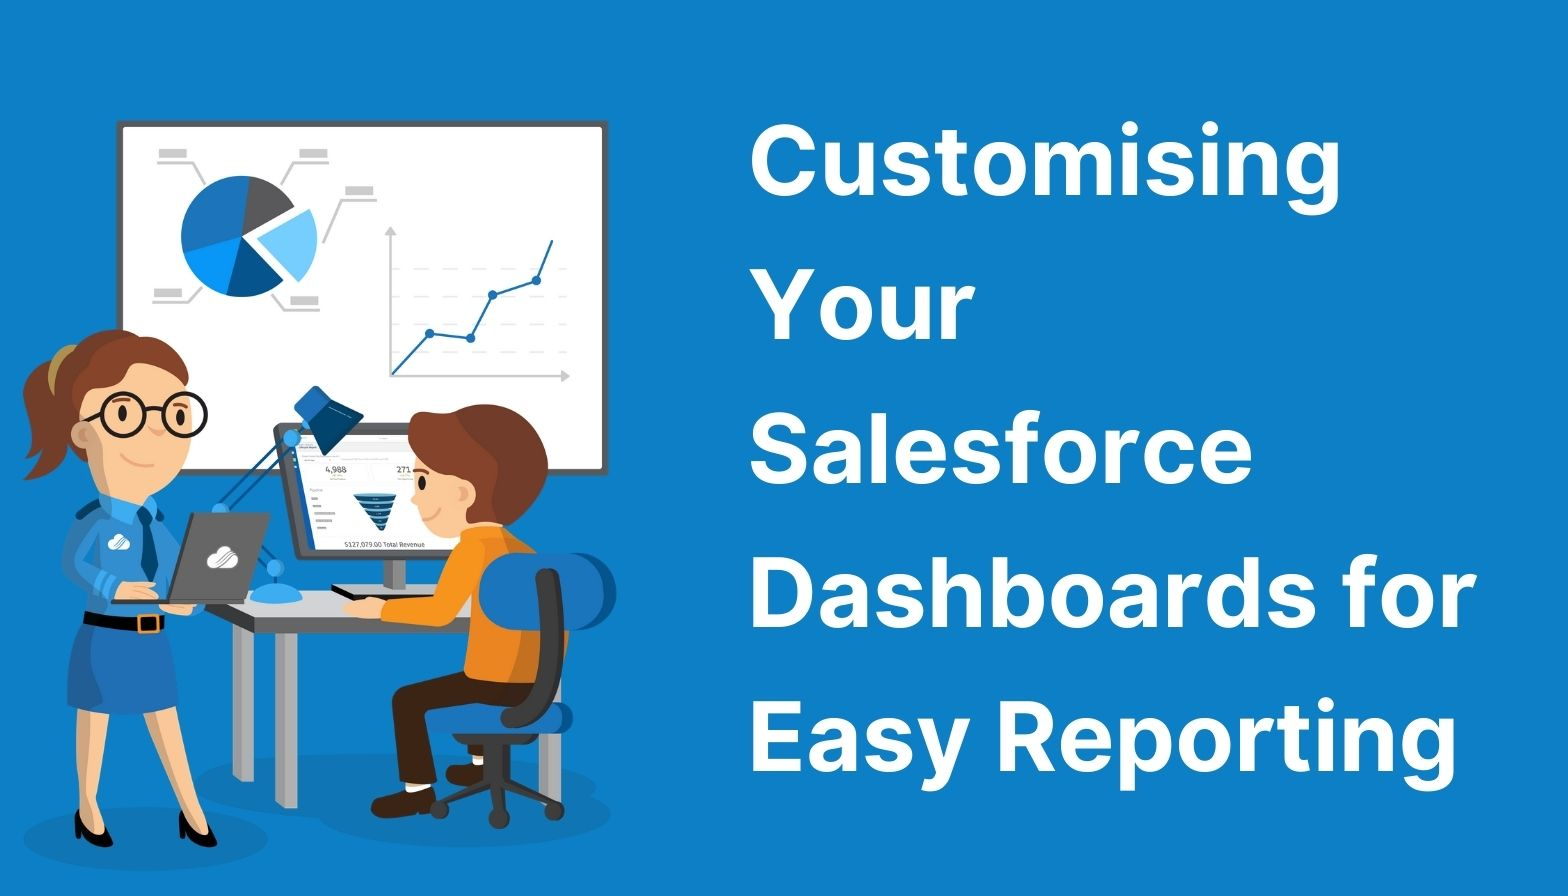 Customising Your Salesforce Dashboards for Easy Reporting